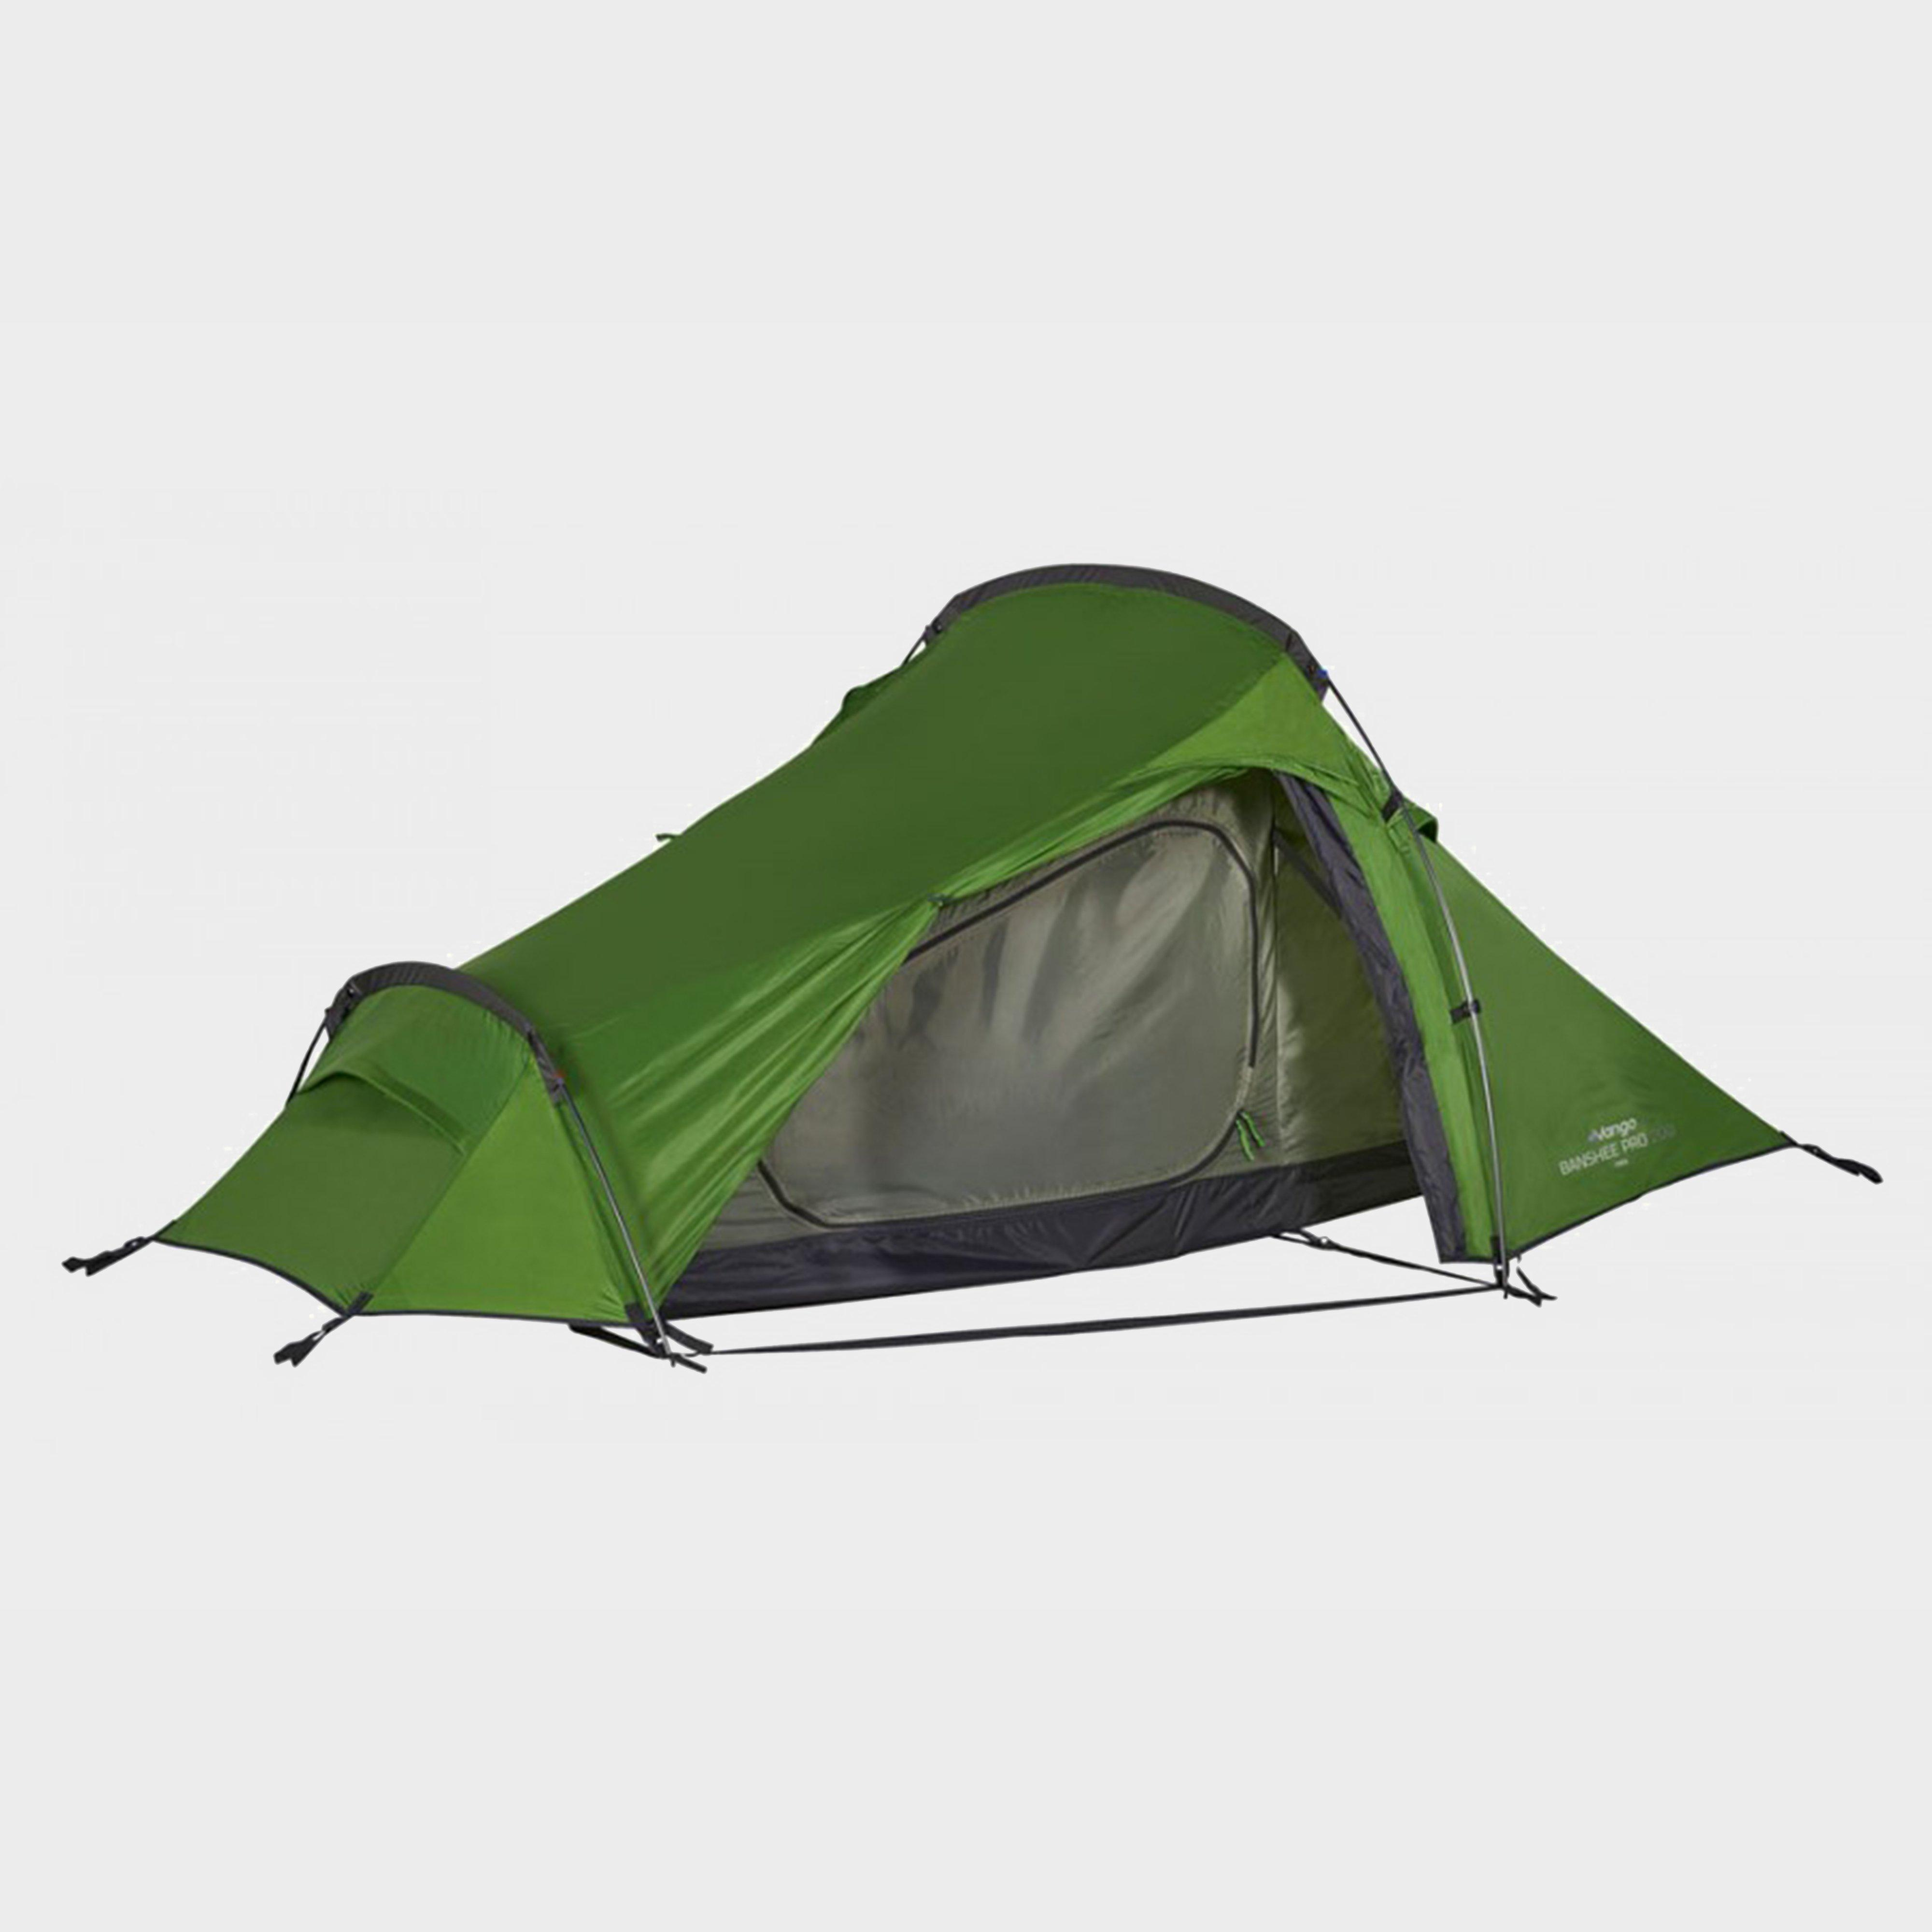 Vango Vango Banshee 200 Pro Backpacking Tent - Green, Green